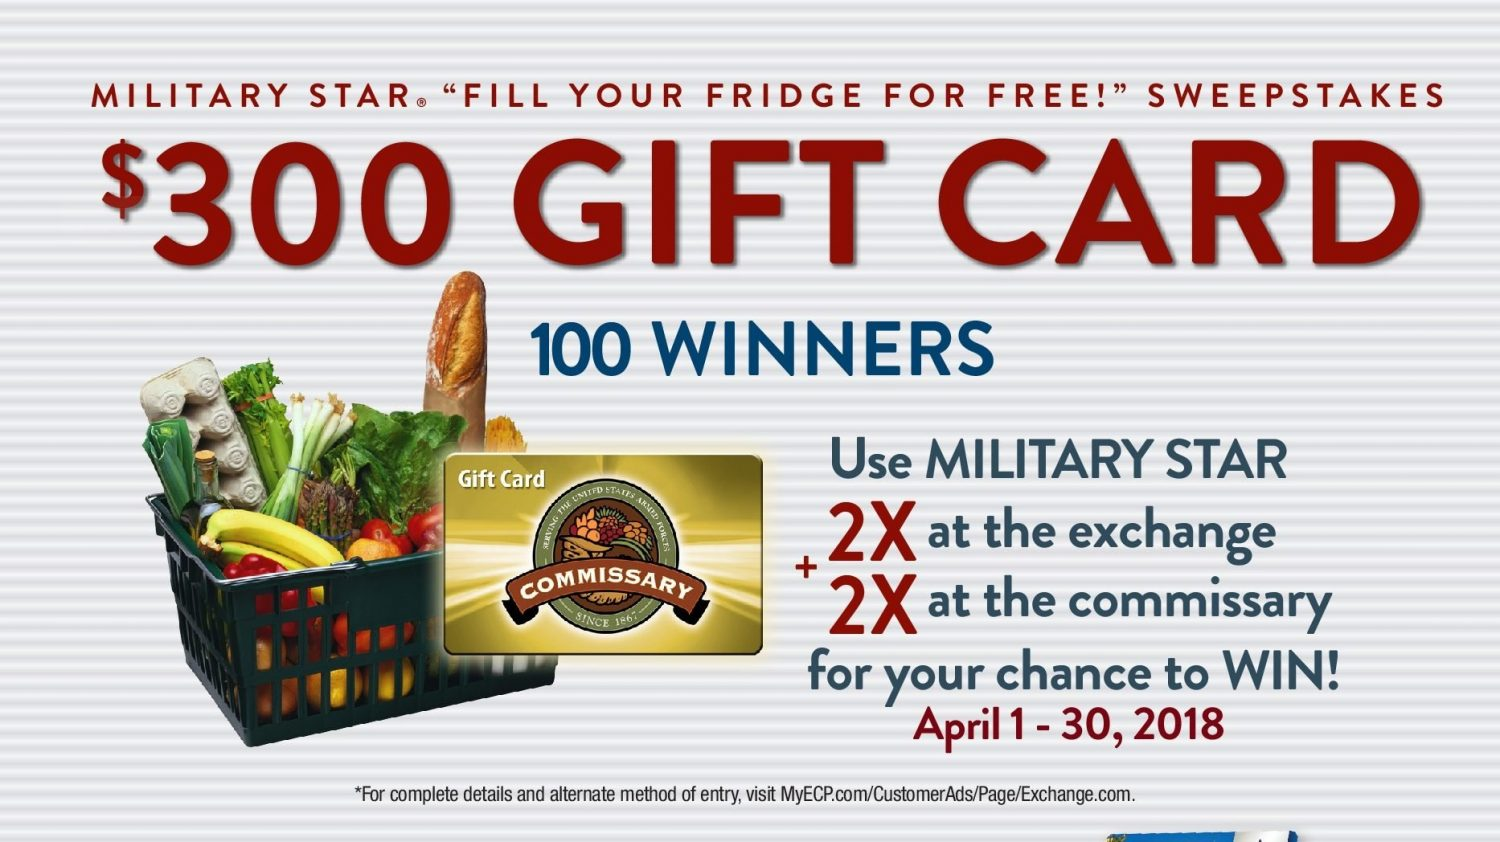 MILITARY STAR Card Helps Military Shoppers Fill Their Fridge for Free!